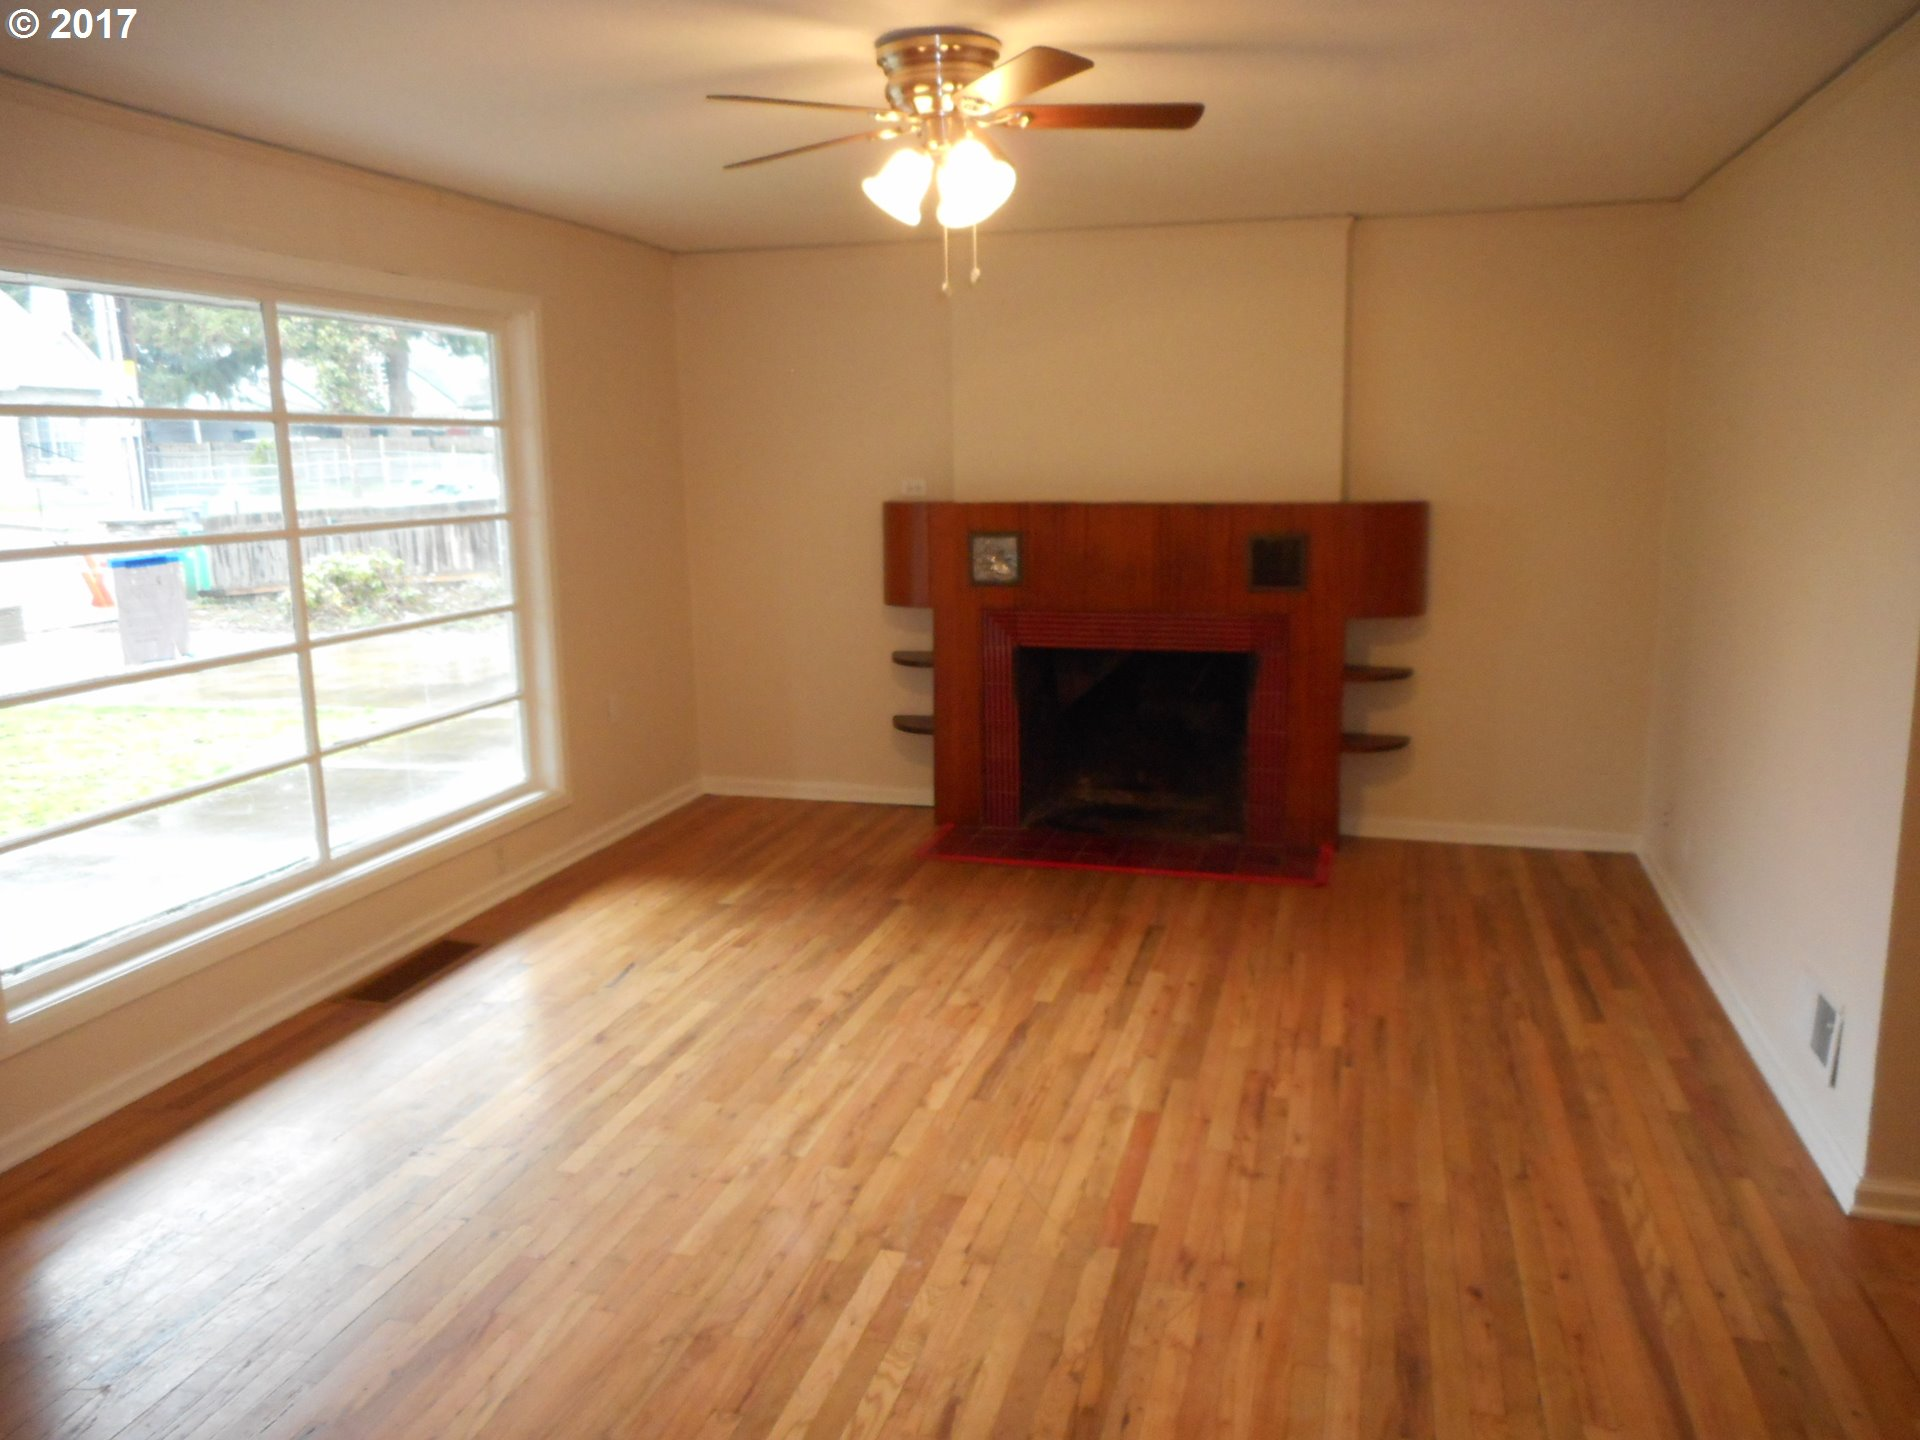 1652 sq. ft 3 bedrooms 1 bathrooms  House ,Portland, OR